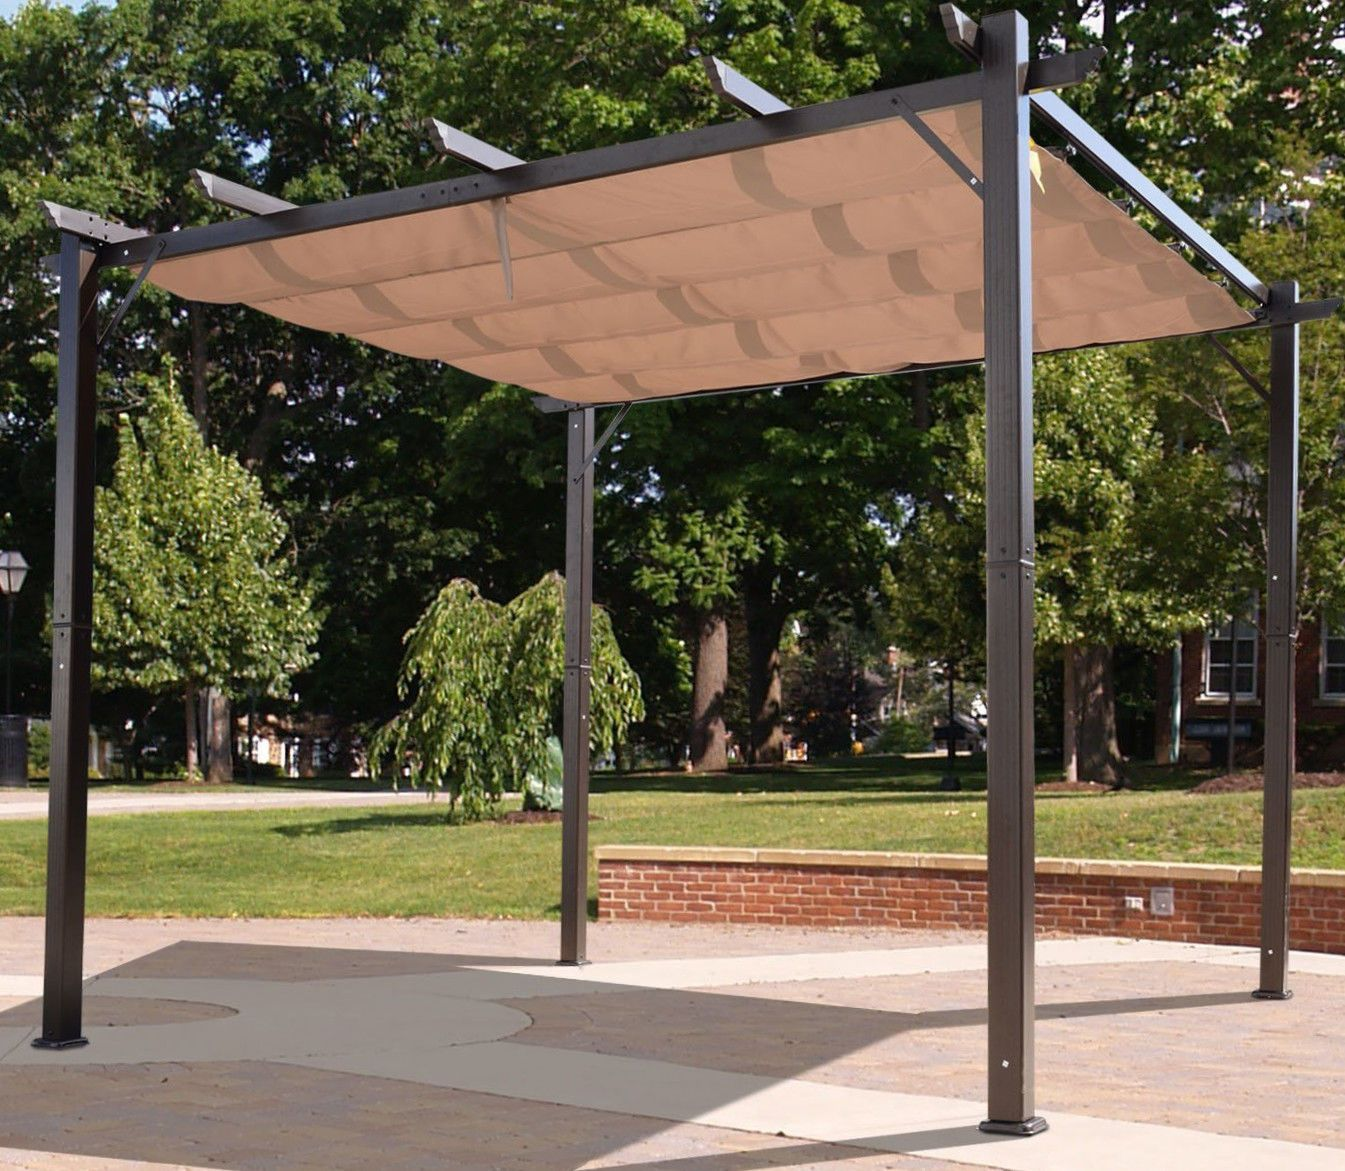 Outdoor Pergola Aluminum Canopy Retractable Shade Shelter 10x10 Patio Gazebo Kit Ebay Pergola Exterior Planos De Pergola Paisajes